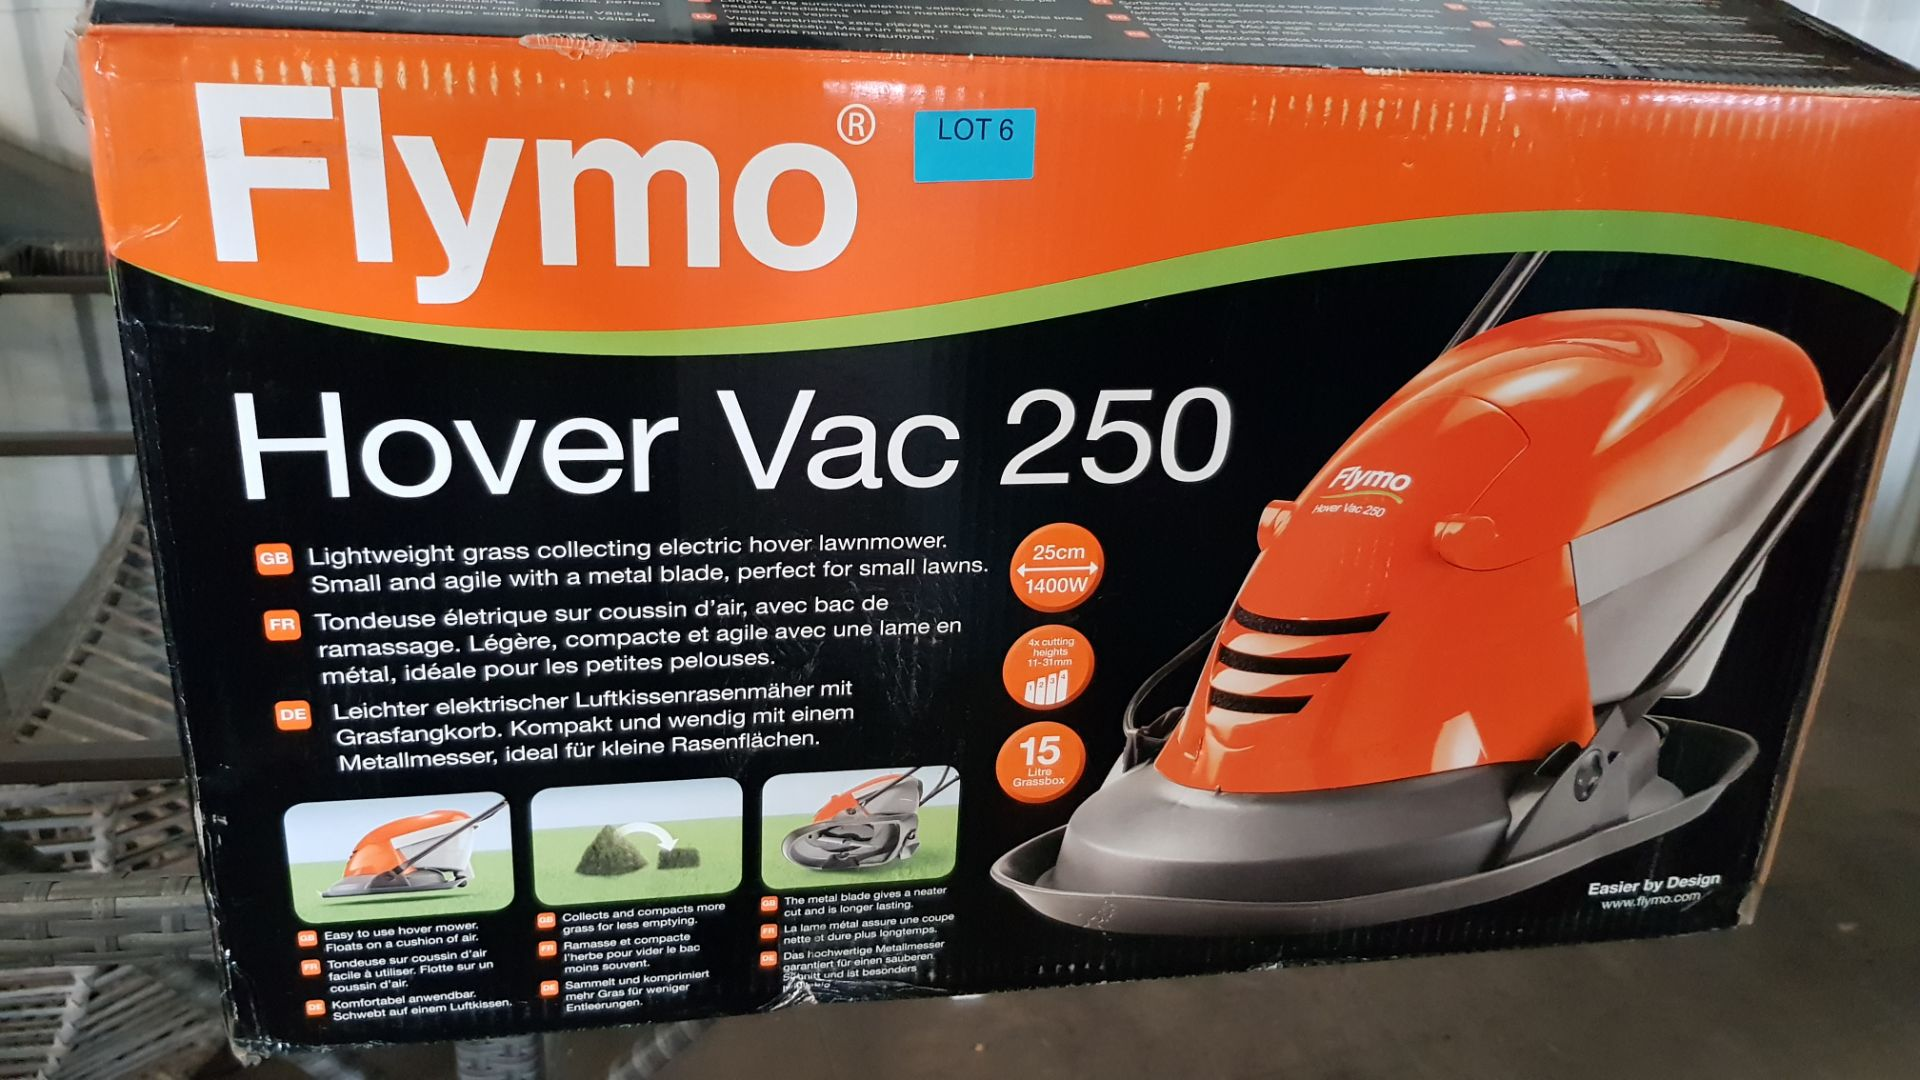 (P8) 1x Flymo Hover Vac 250 RRP £80. Contents Appear Clean, Unused. - Image 3 of 5